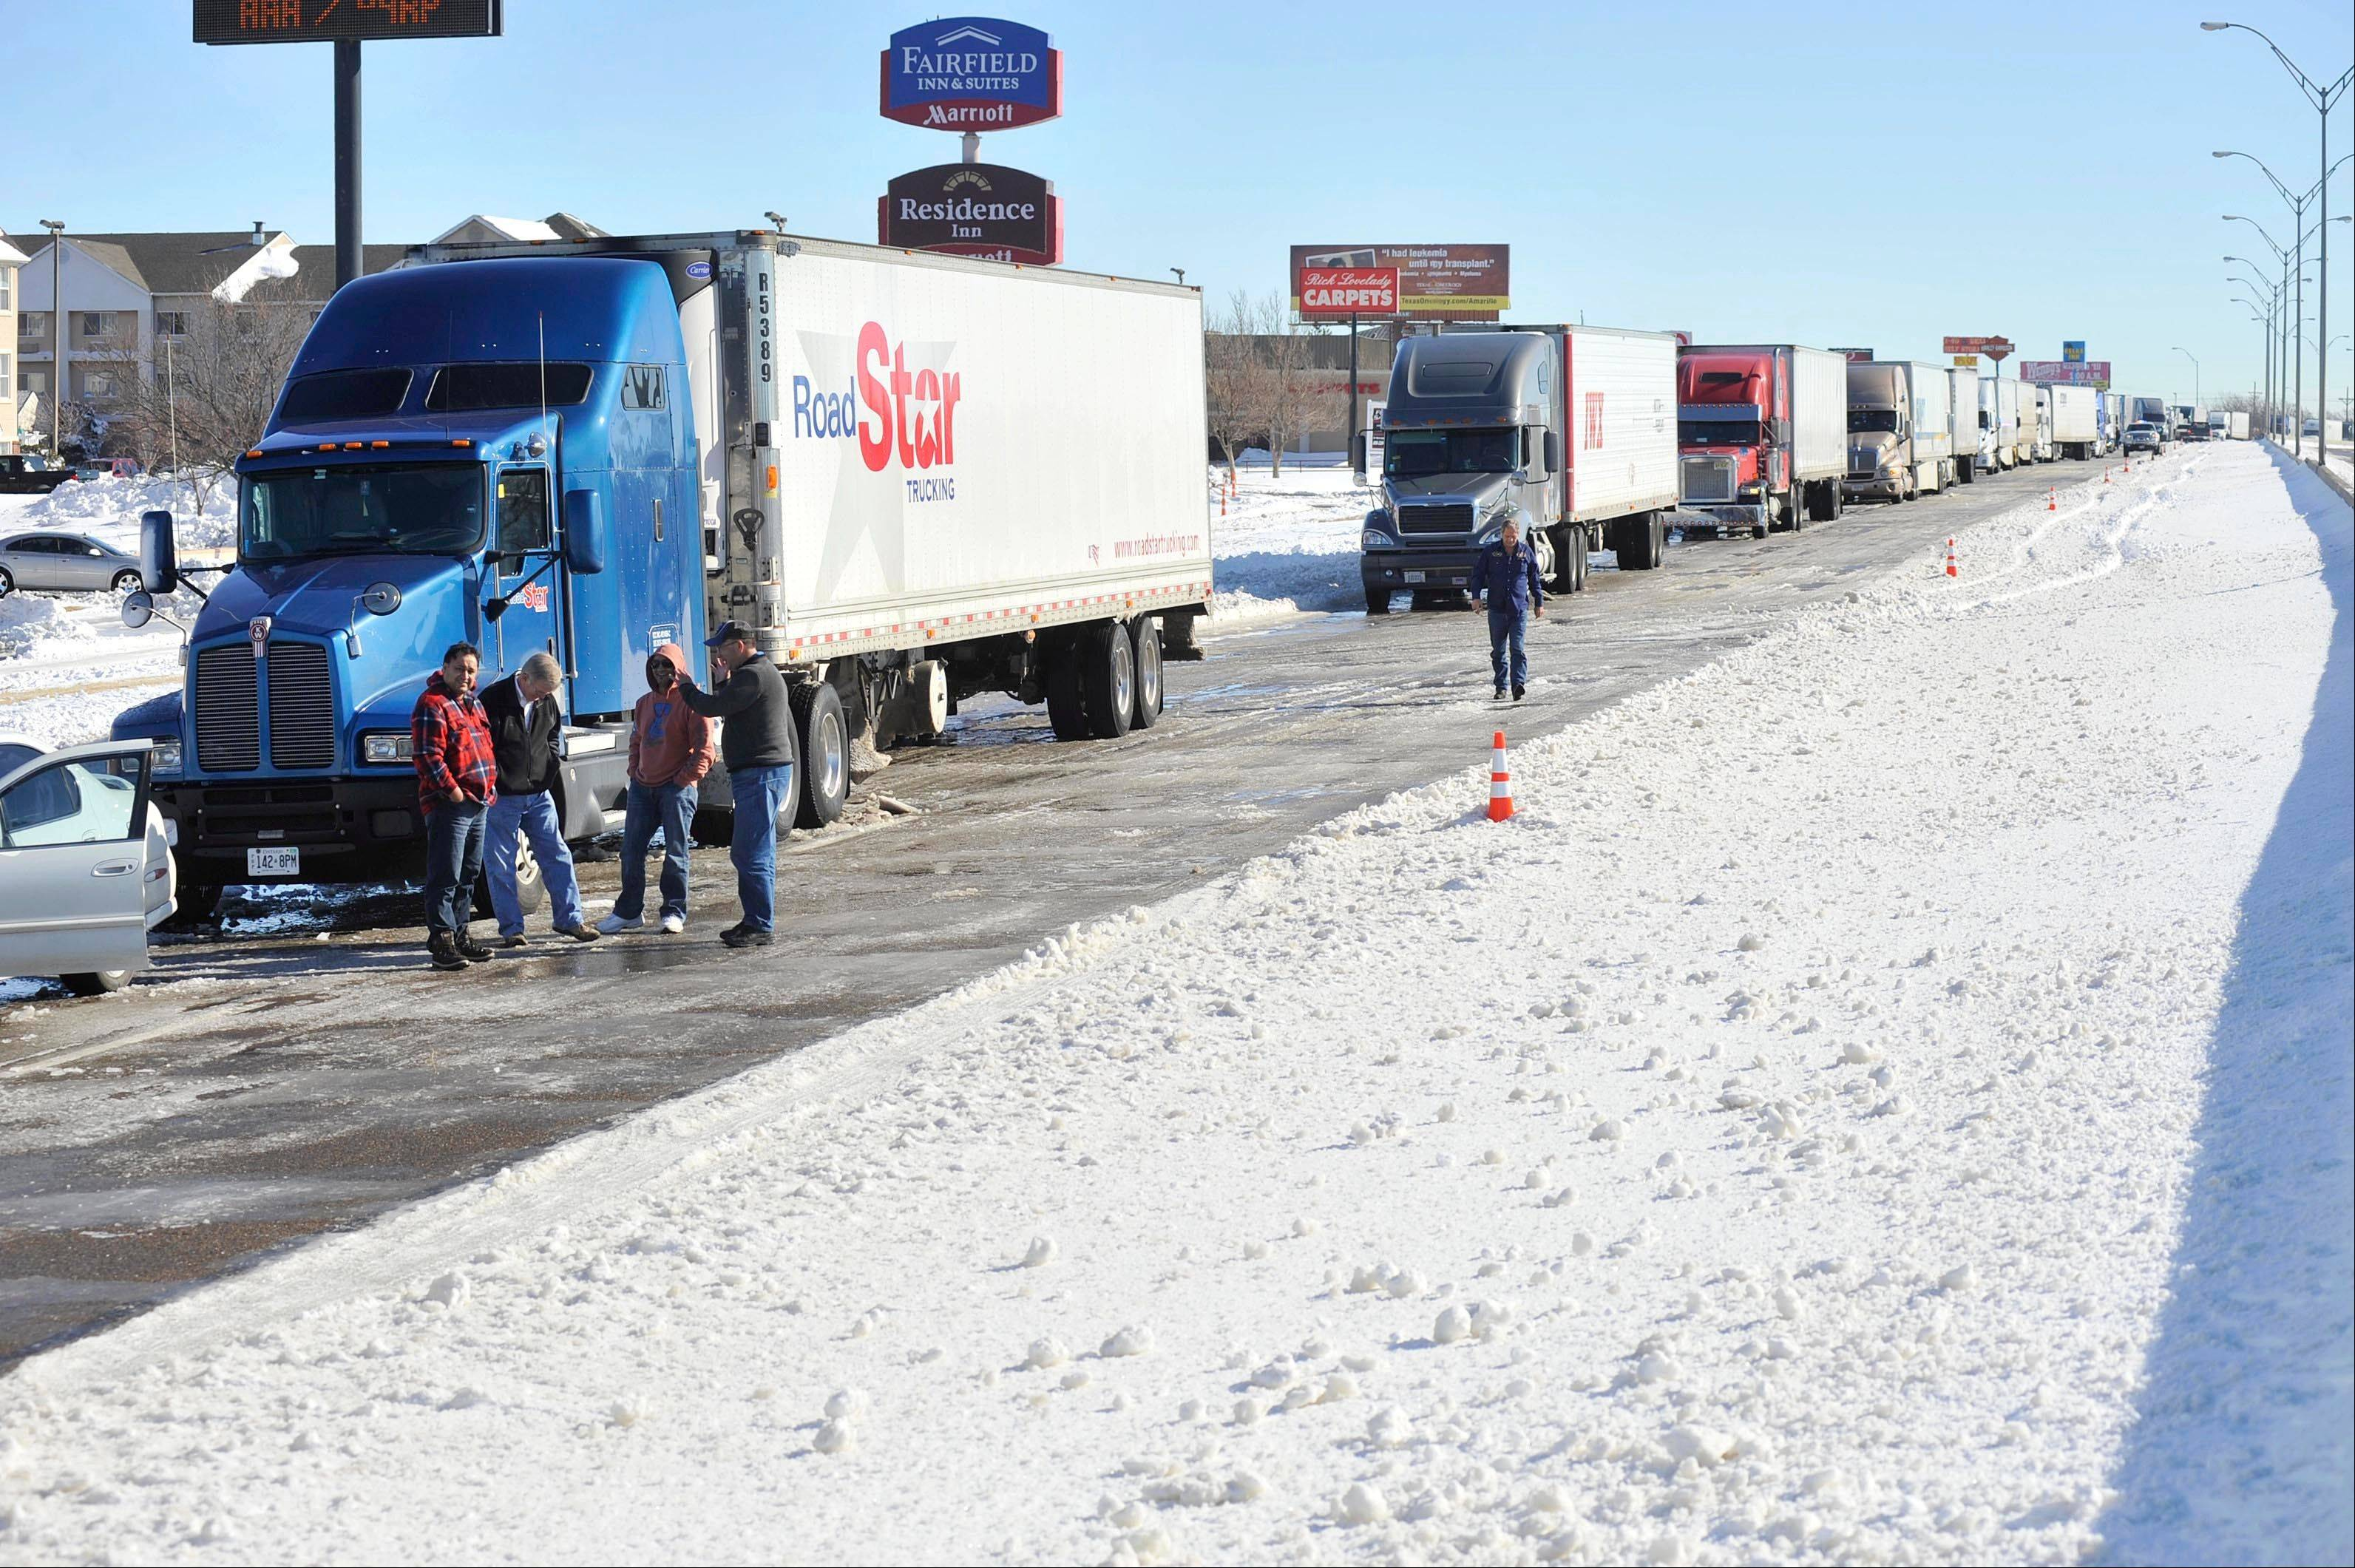 Traffic is at a complete standstill waiting for the highway to reopen on Tuesday in Amarillo, Texas. I-40 westbound was reopened and traffic began moving at noon. The blizzard that hammered the nation�s midsection broke a 120-year-old record in Amarillo for one-day snowfall in February with 19.1 inches.